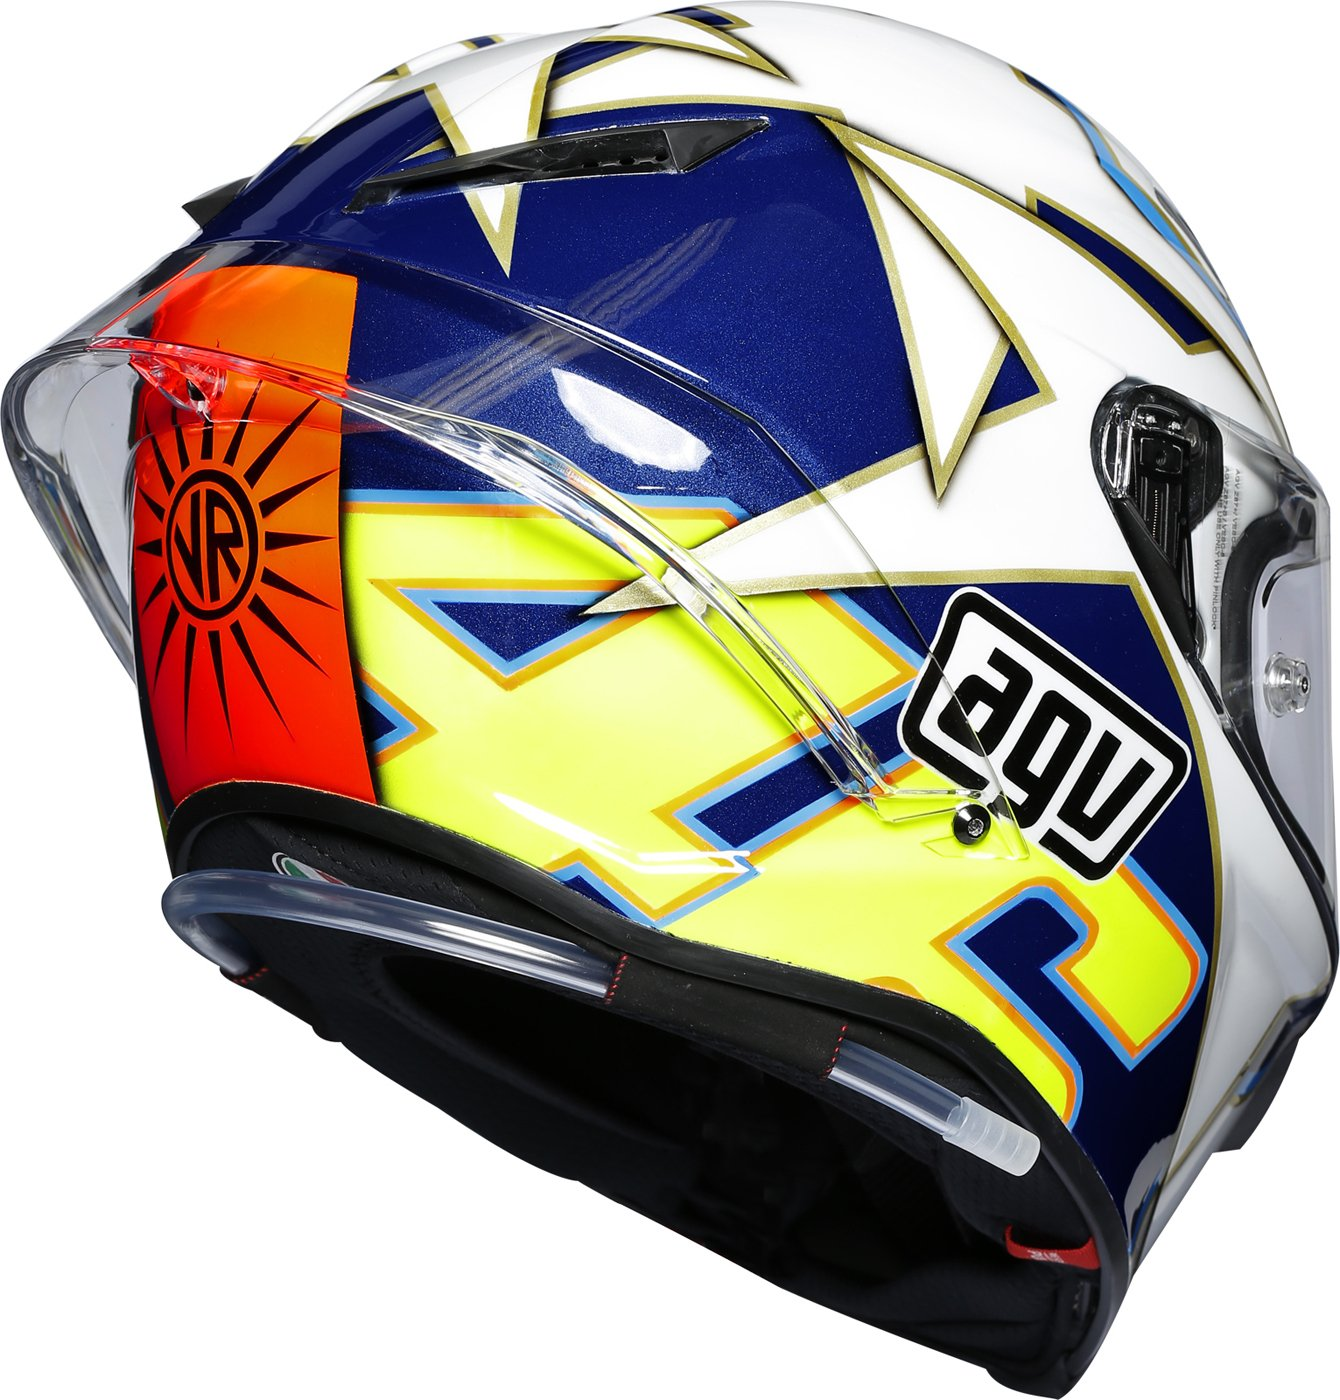 AGV Pista GP RR World Title 2003 Limited Edition 7